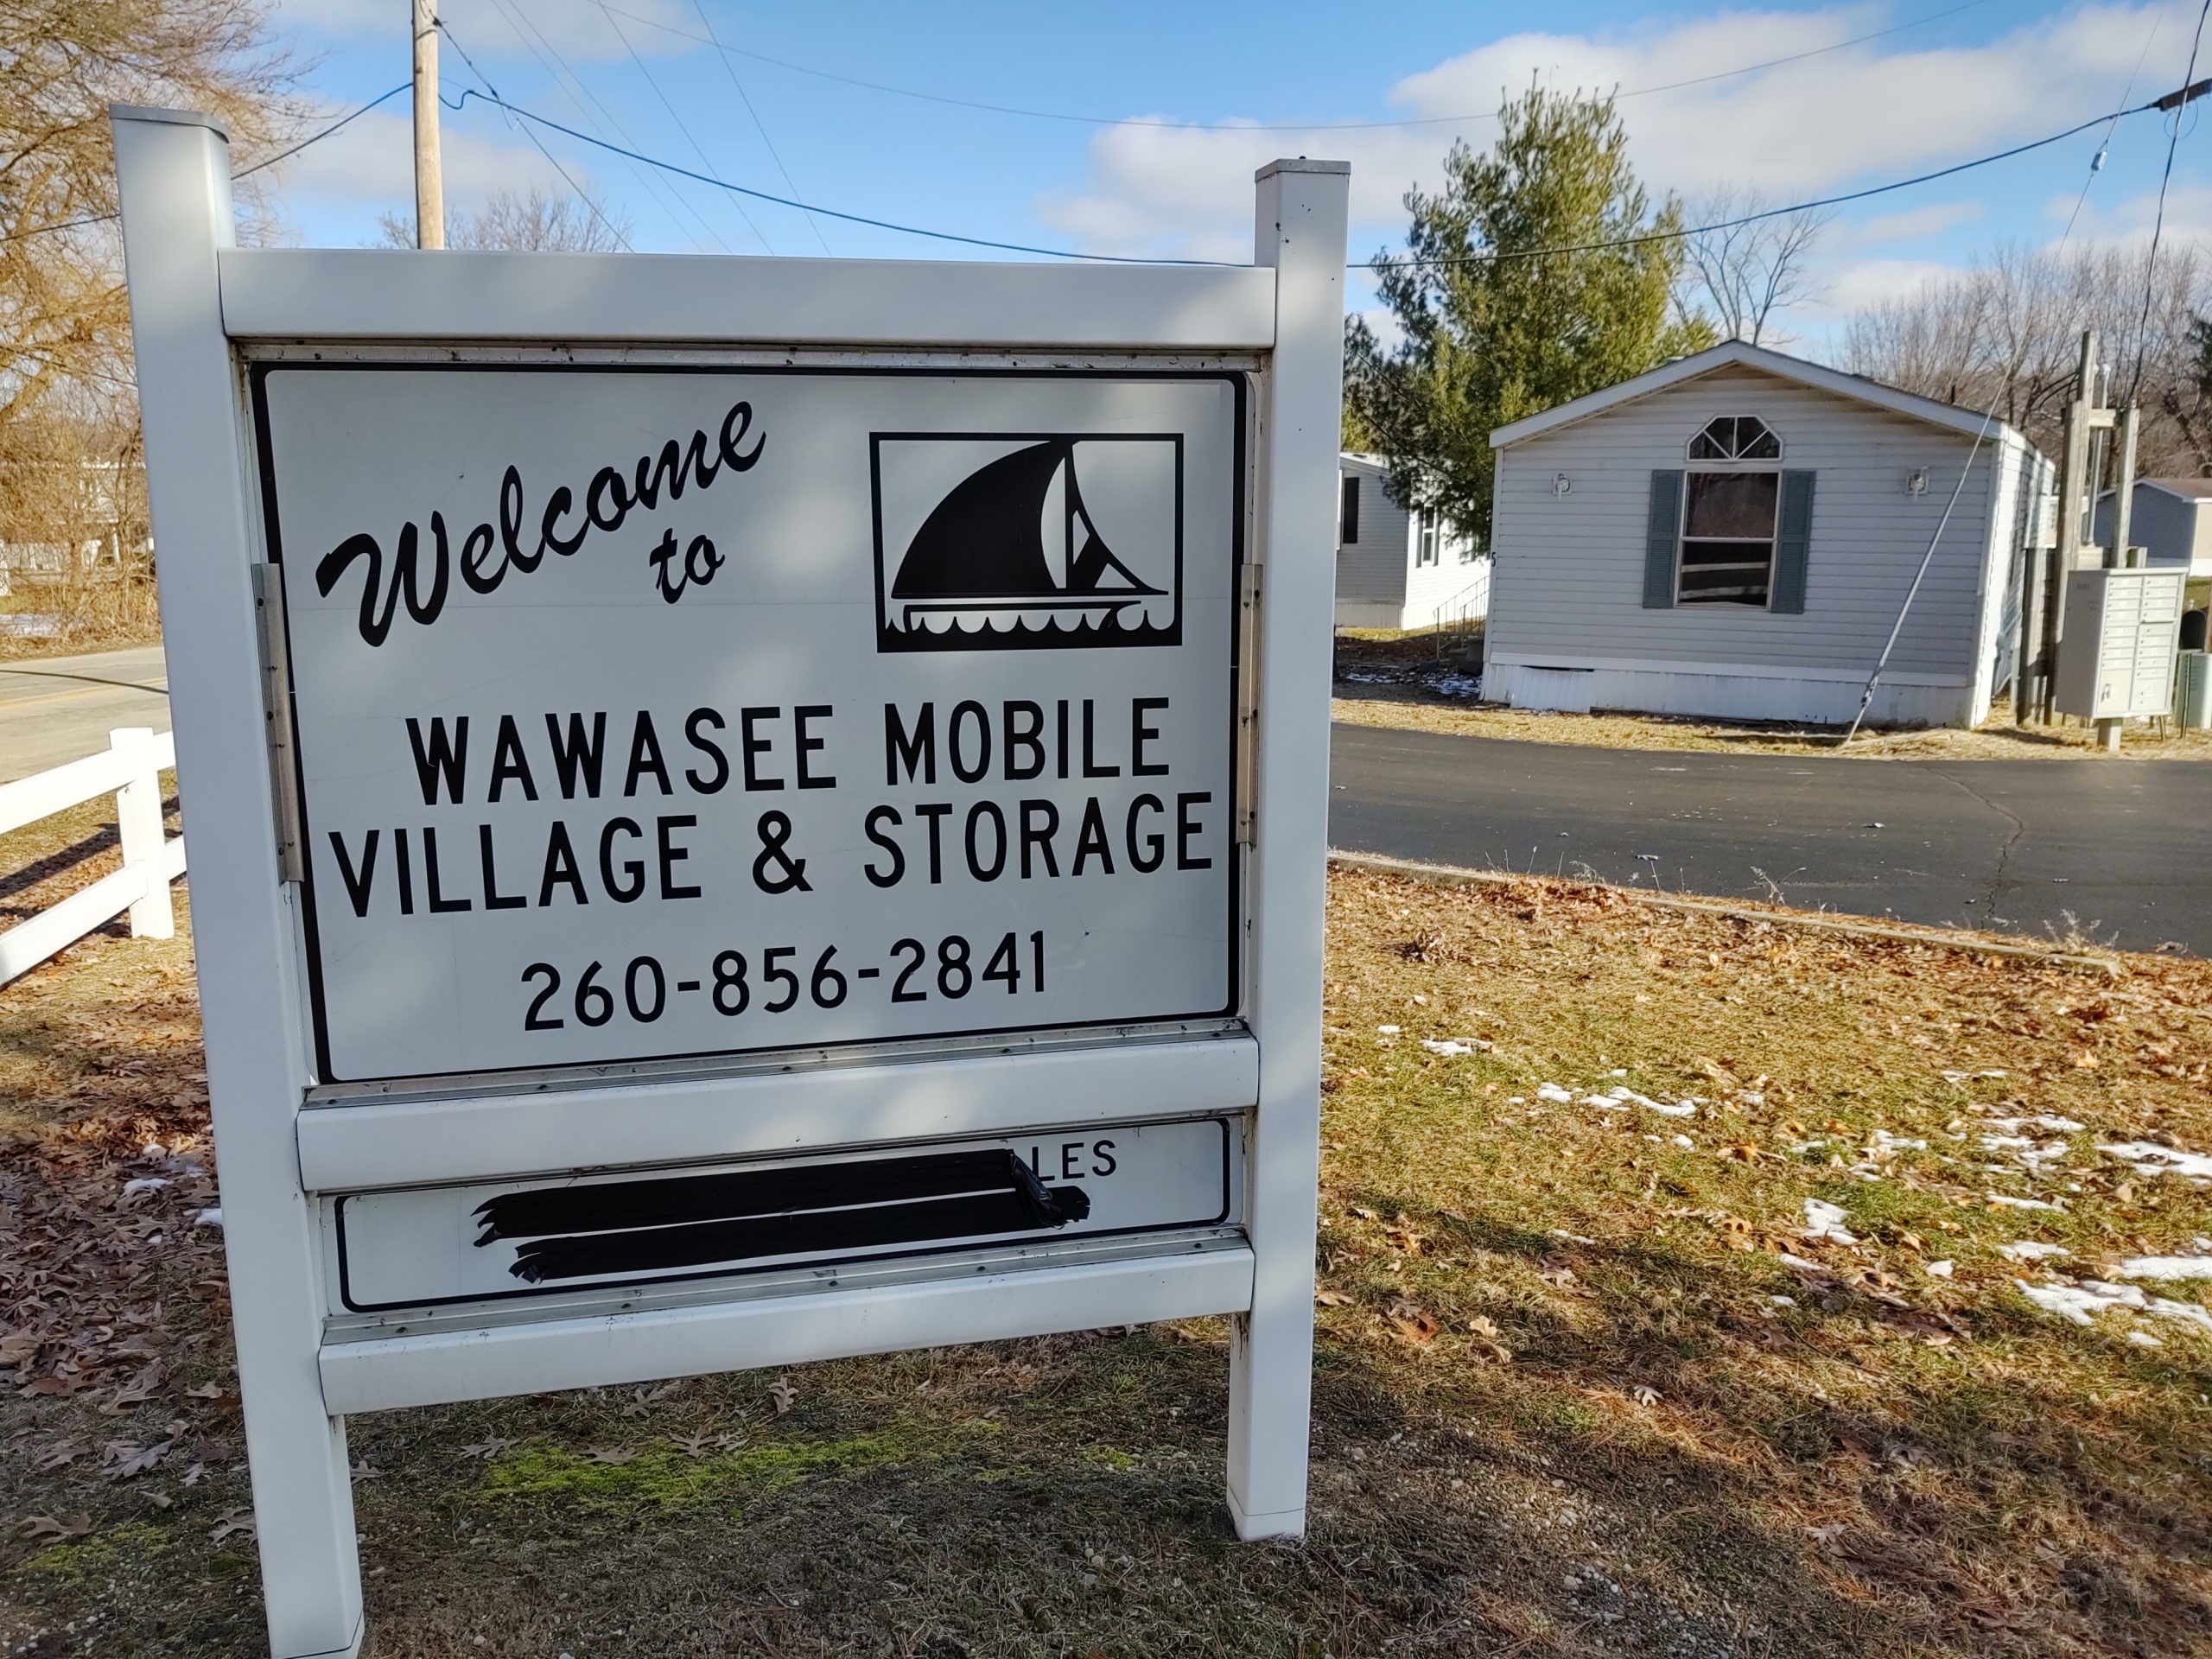 WAWASEE MOBILE VILLAGE AND STORAGE